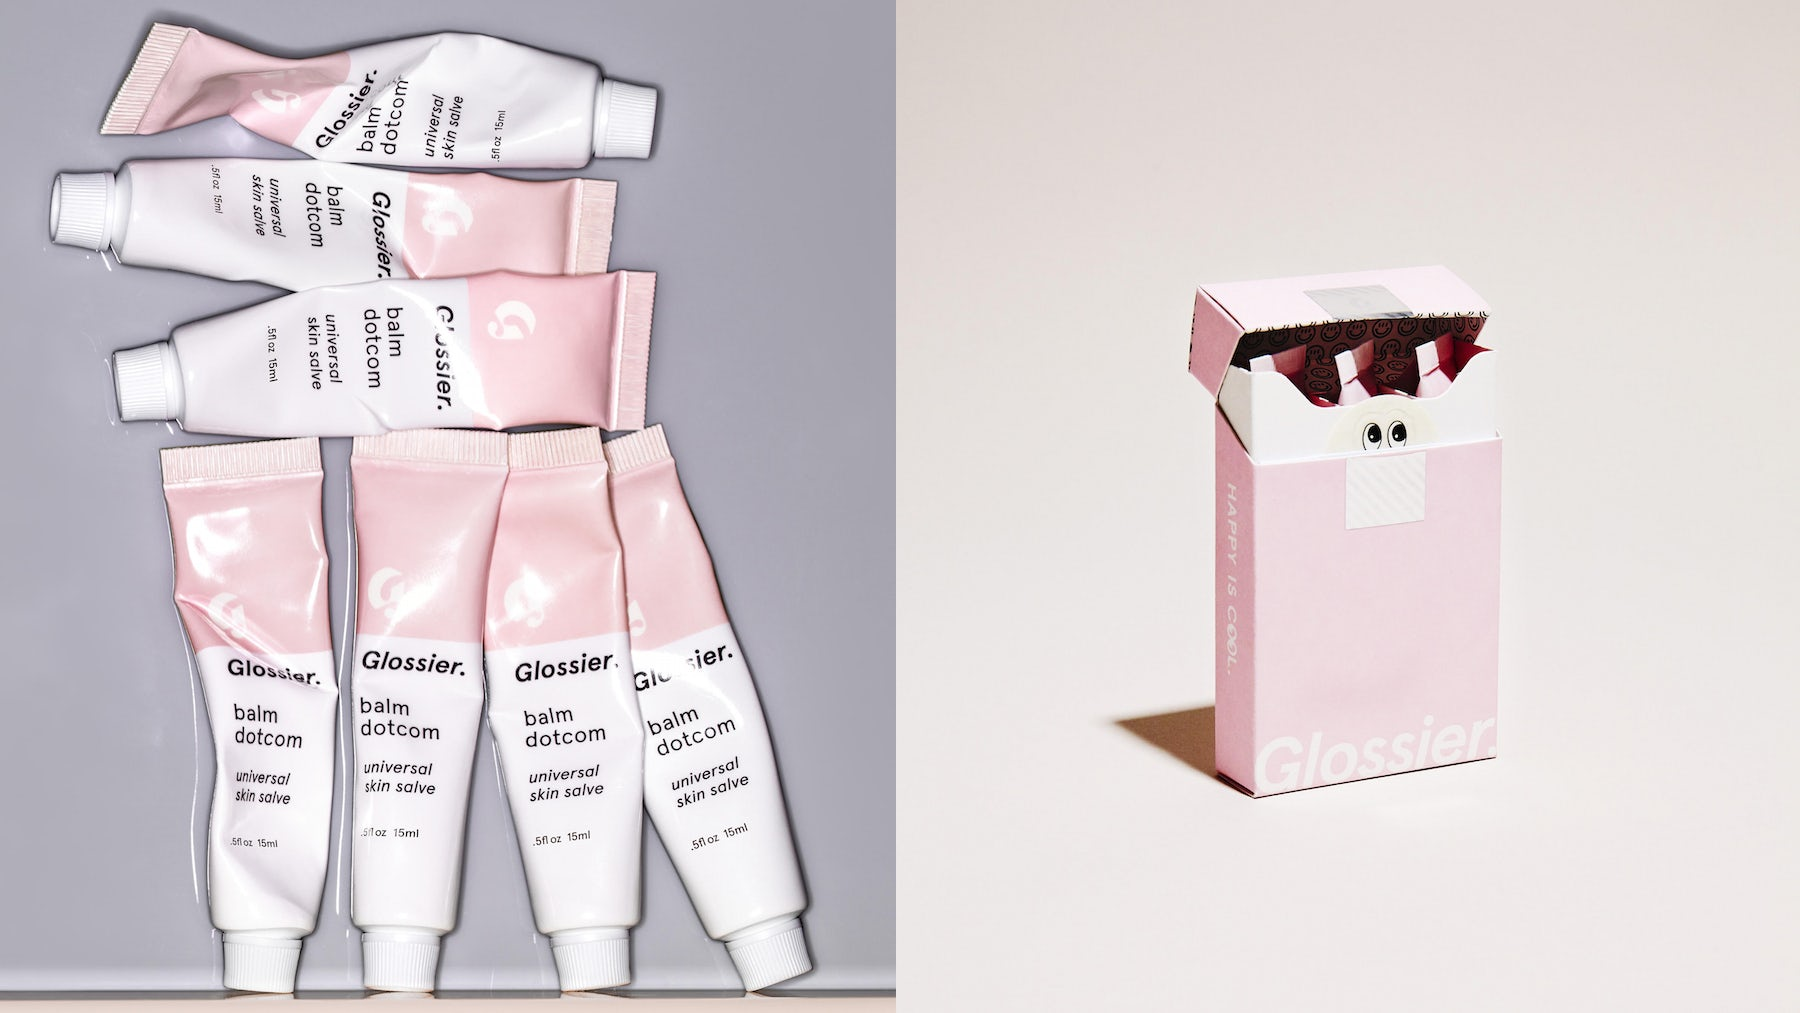 Glossier Raises $100 million After Sales Double